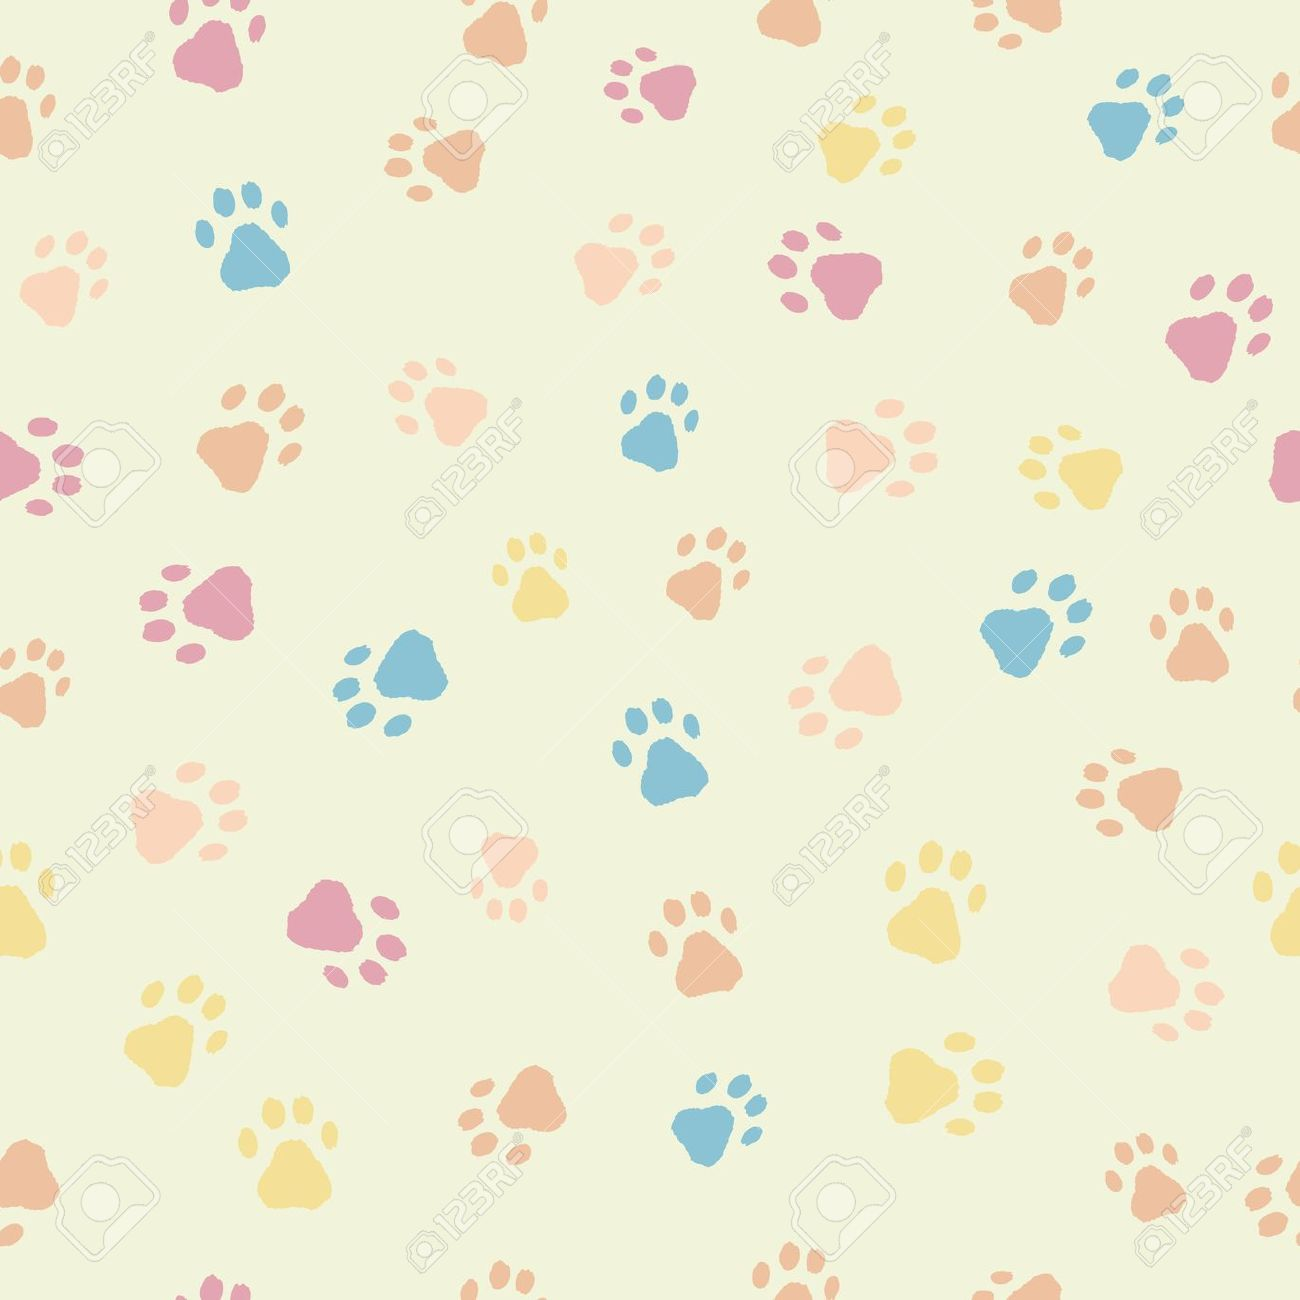 Download Dog Footprint Wallpaper Gallery